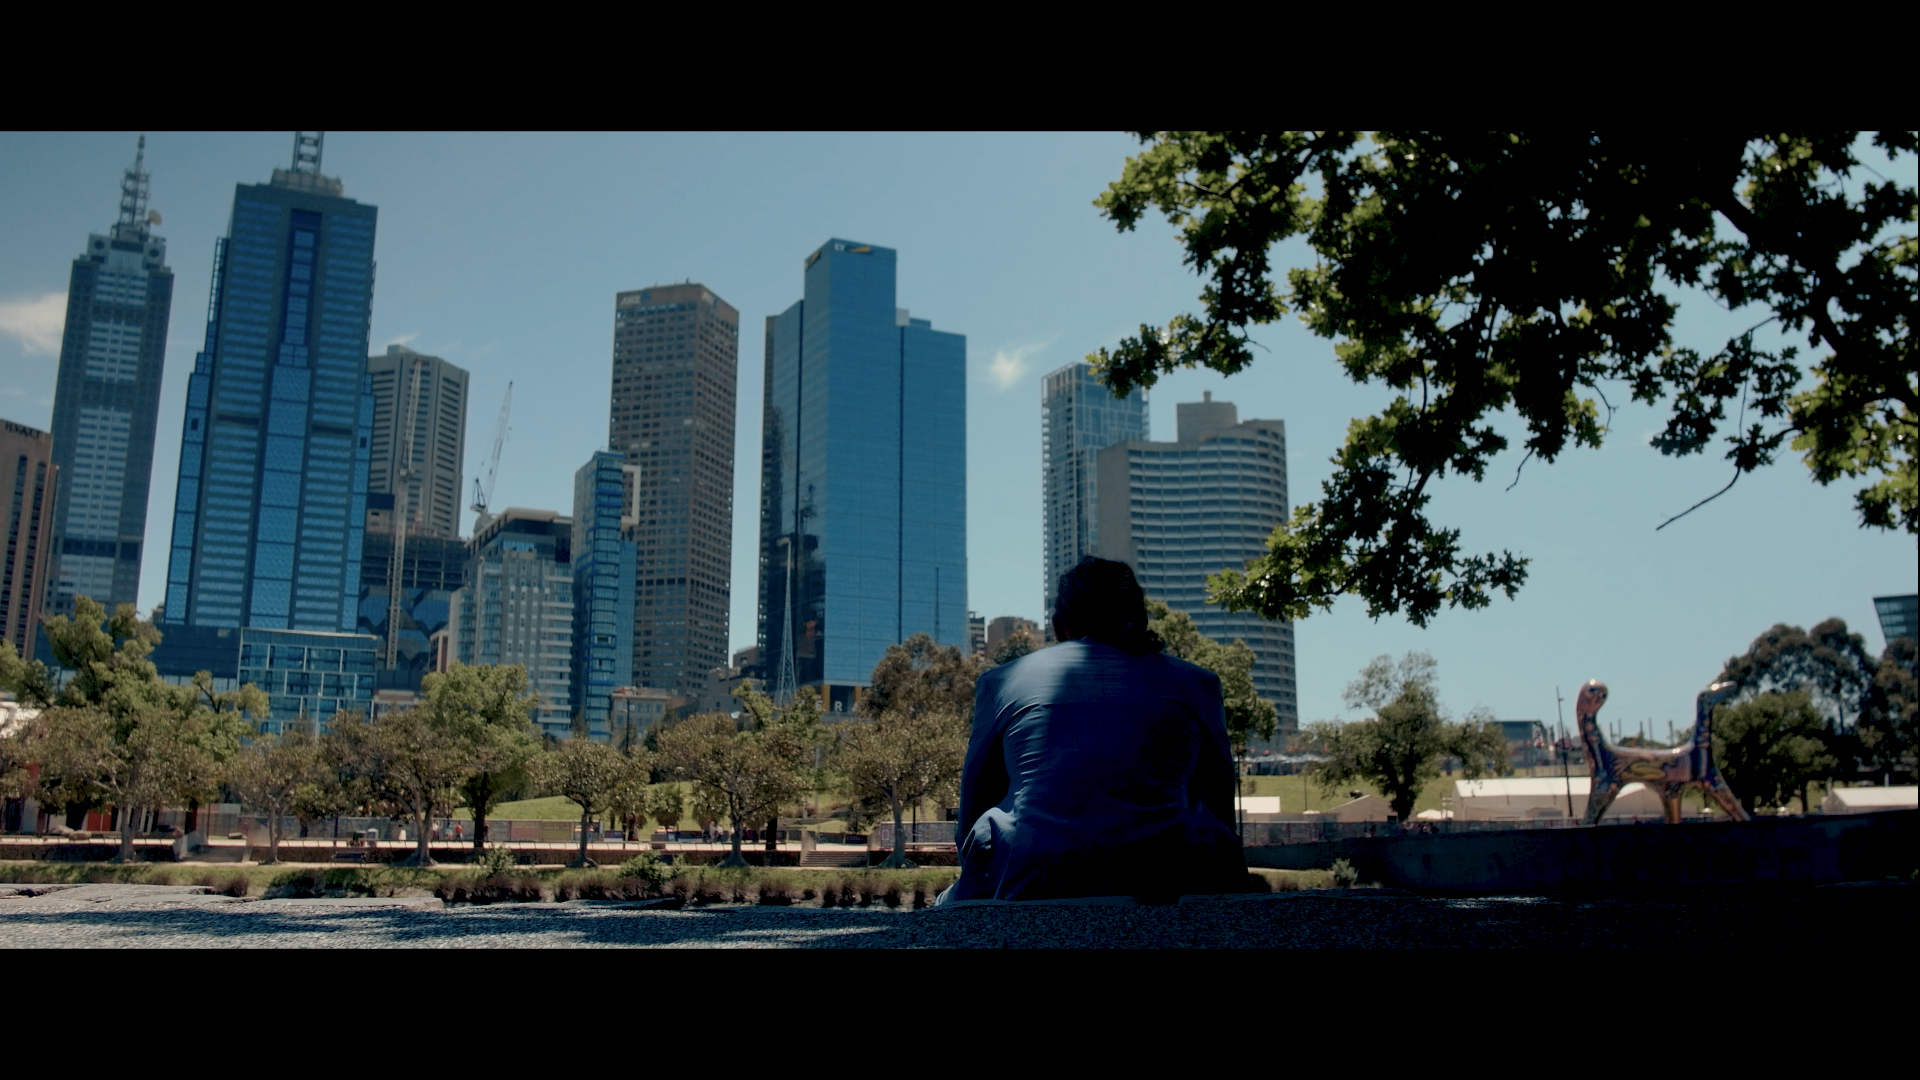 500 days of summer in melbourne - Scene recreation from the movie '500 Days Of Summer'.